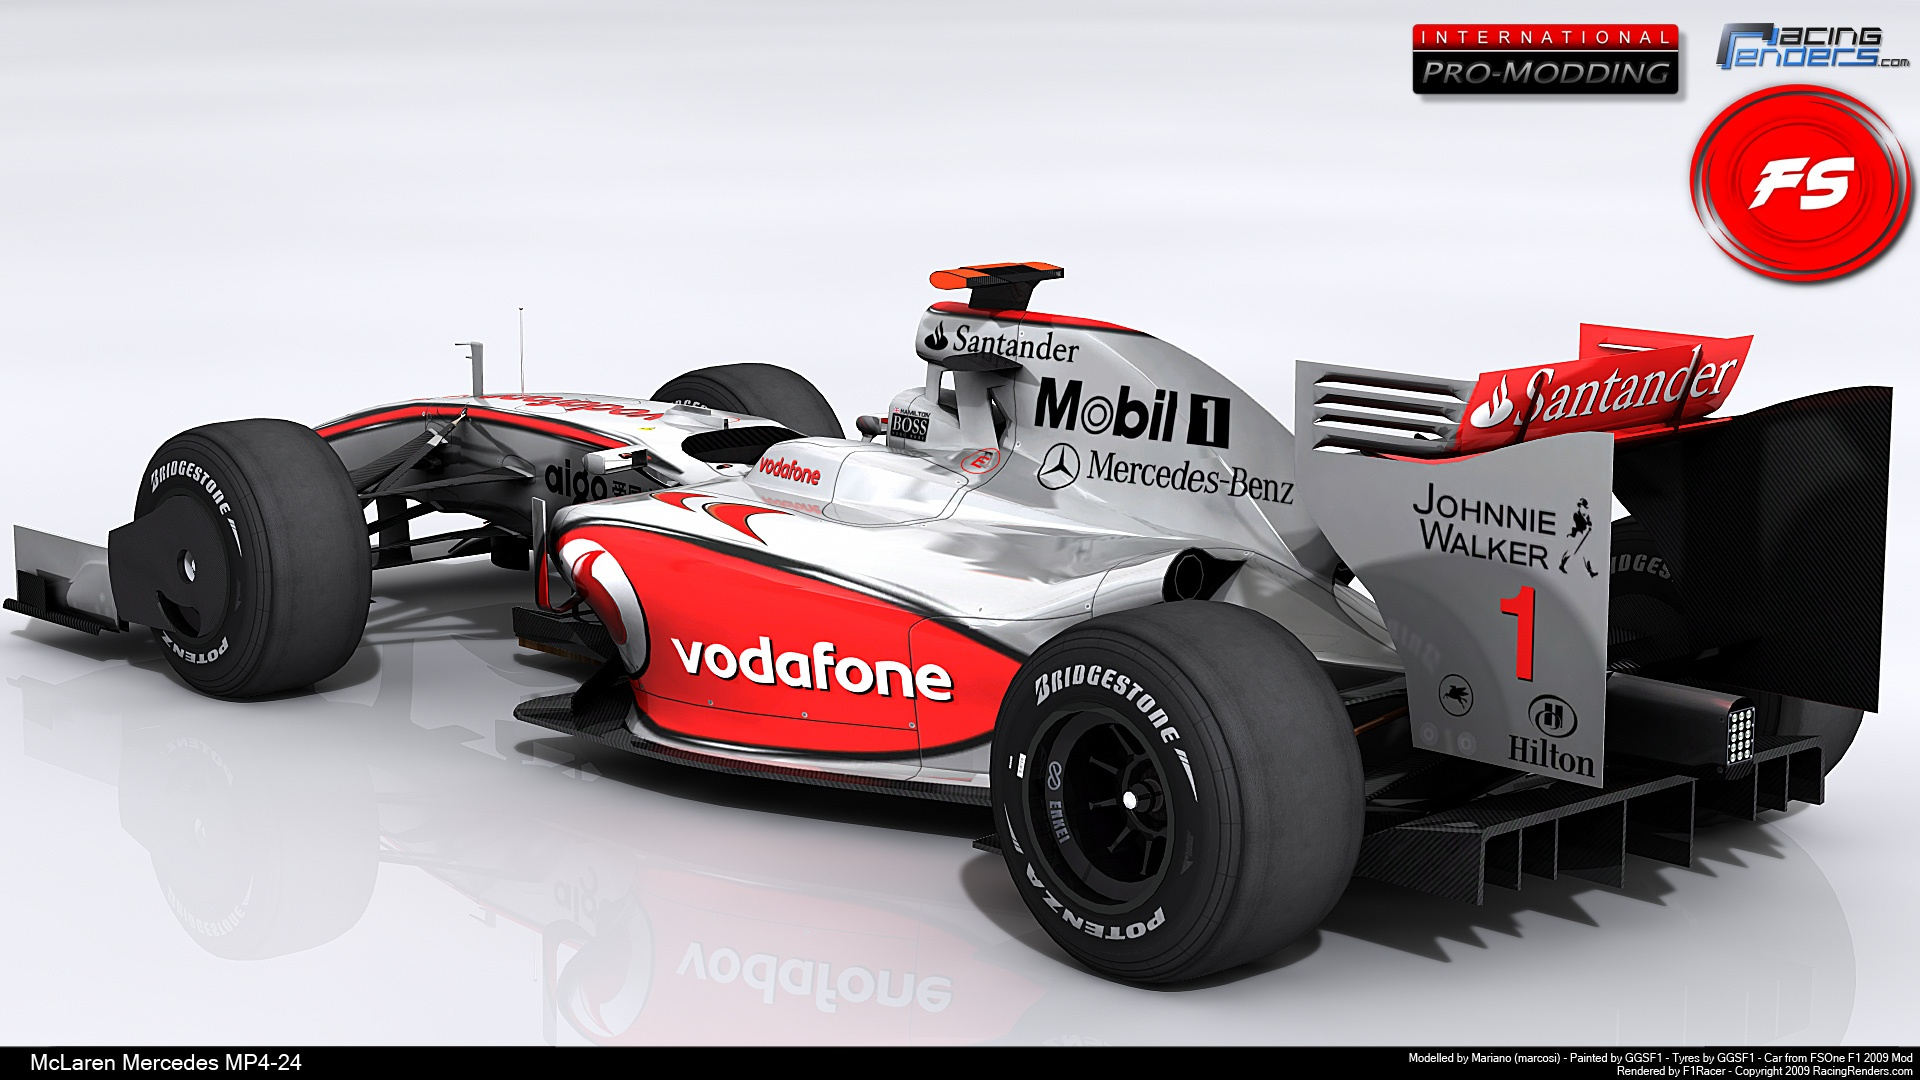 Mercedes Mclaren Race Car Wallpapers In Jpg Format For Free